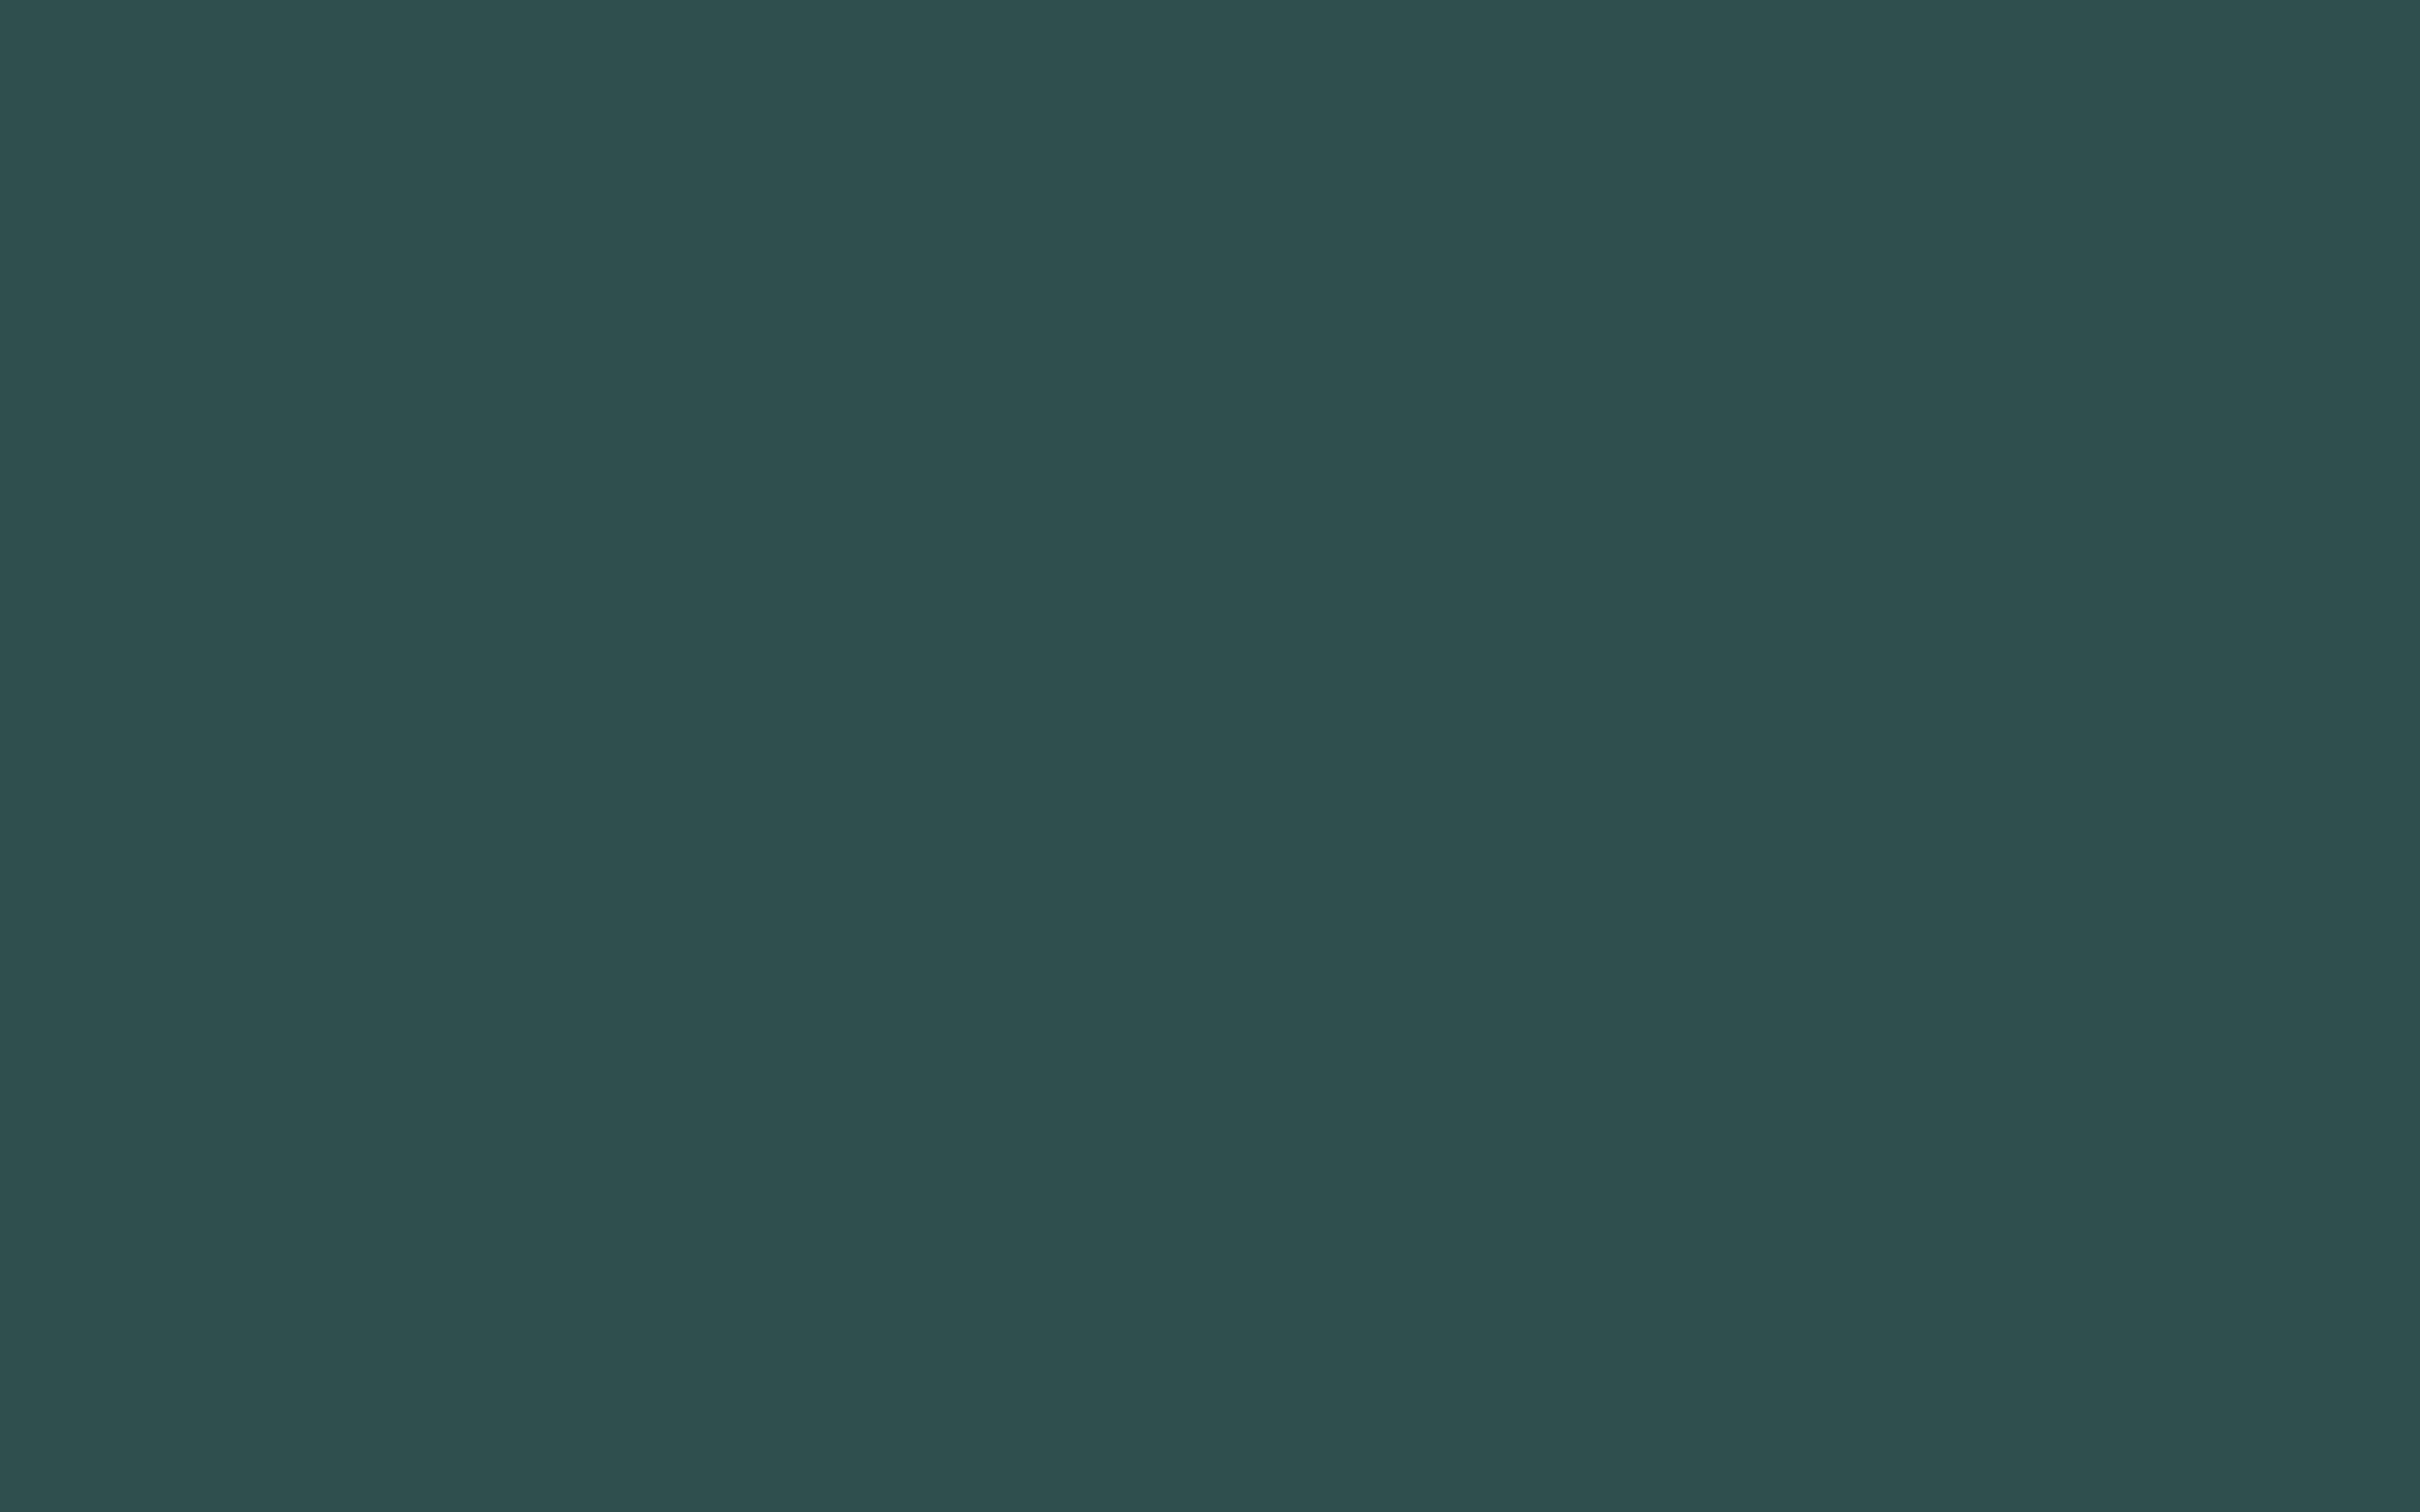 Dark Slate Color : Dark gray background ·① download free wallpapers for